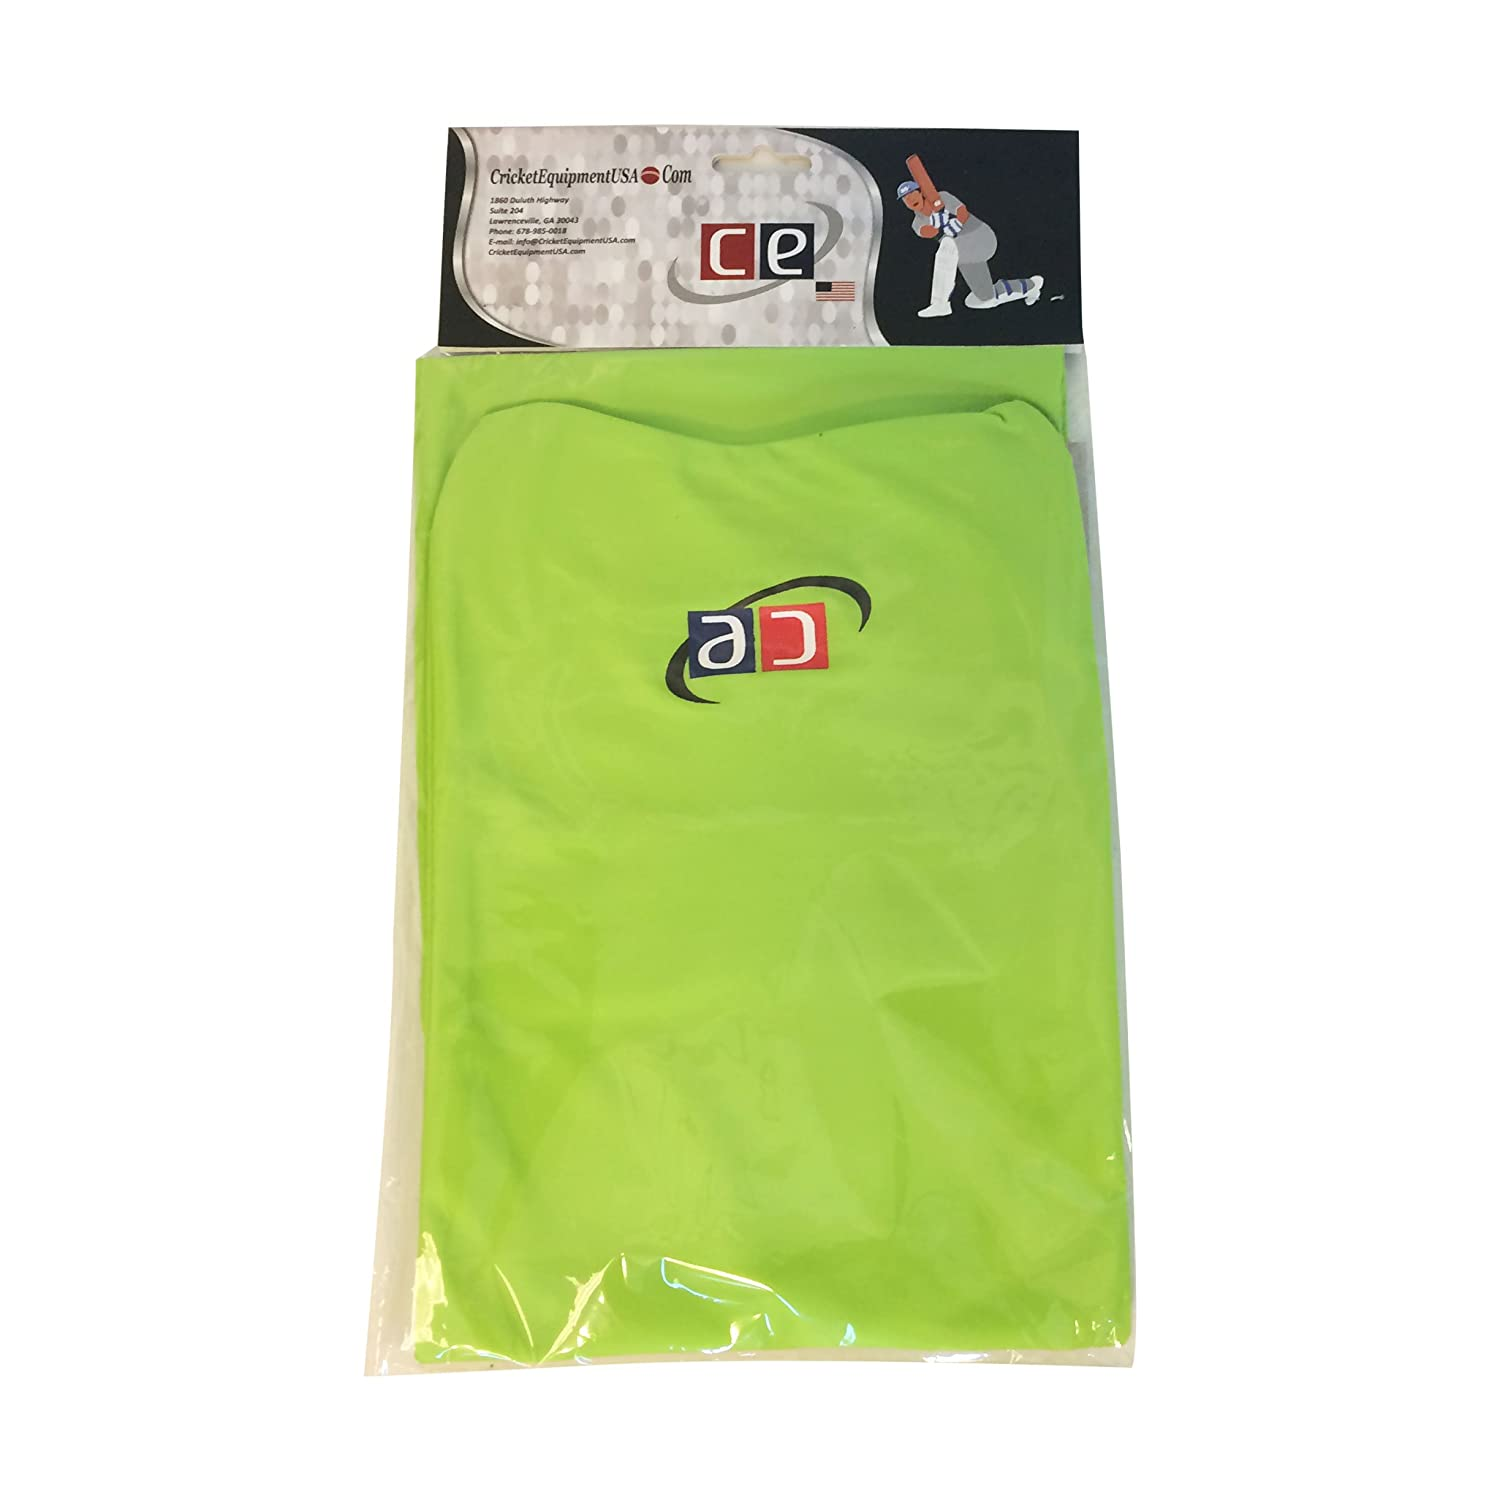 Lime Green, Extra Large CE Colored Cricket Batting Pads Covers Leg Guards Clads by Cricket Equipment USA